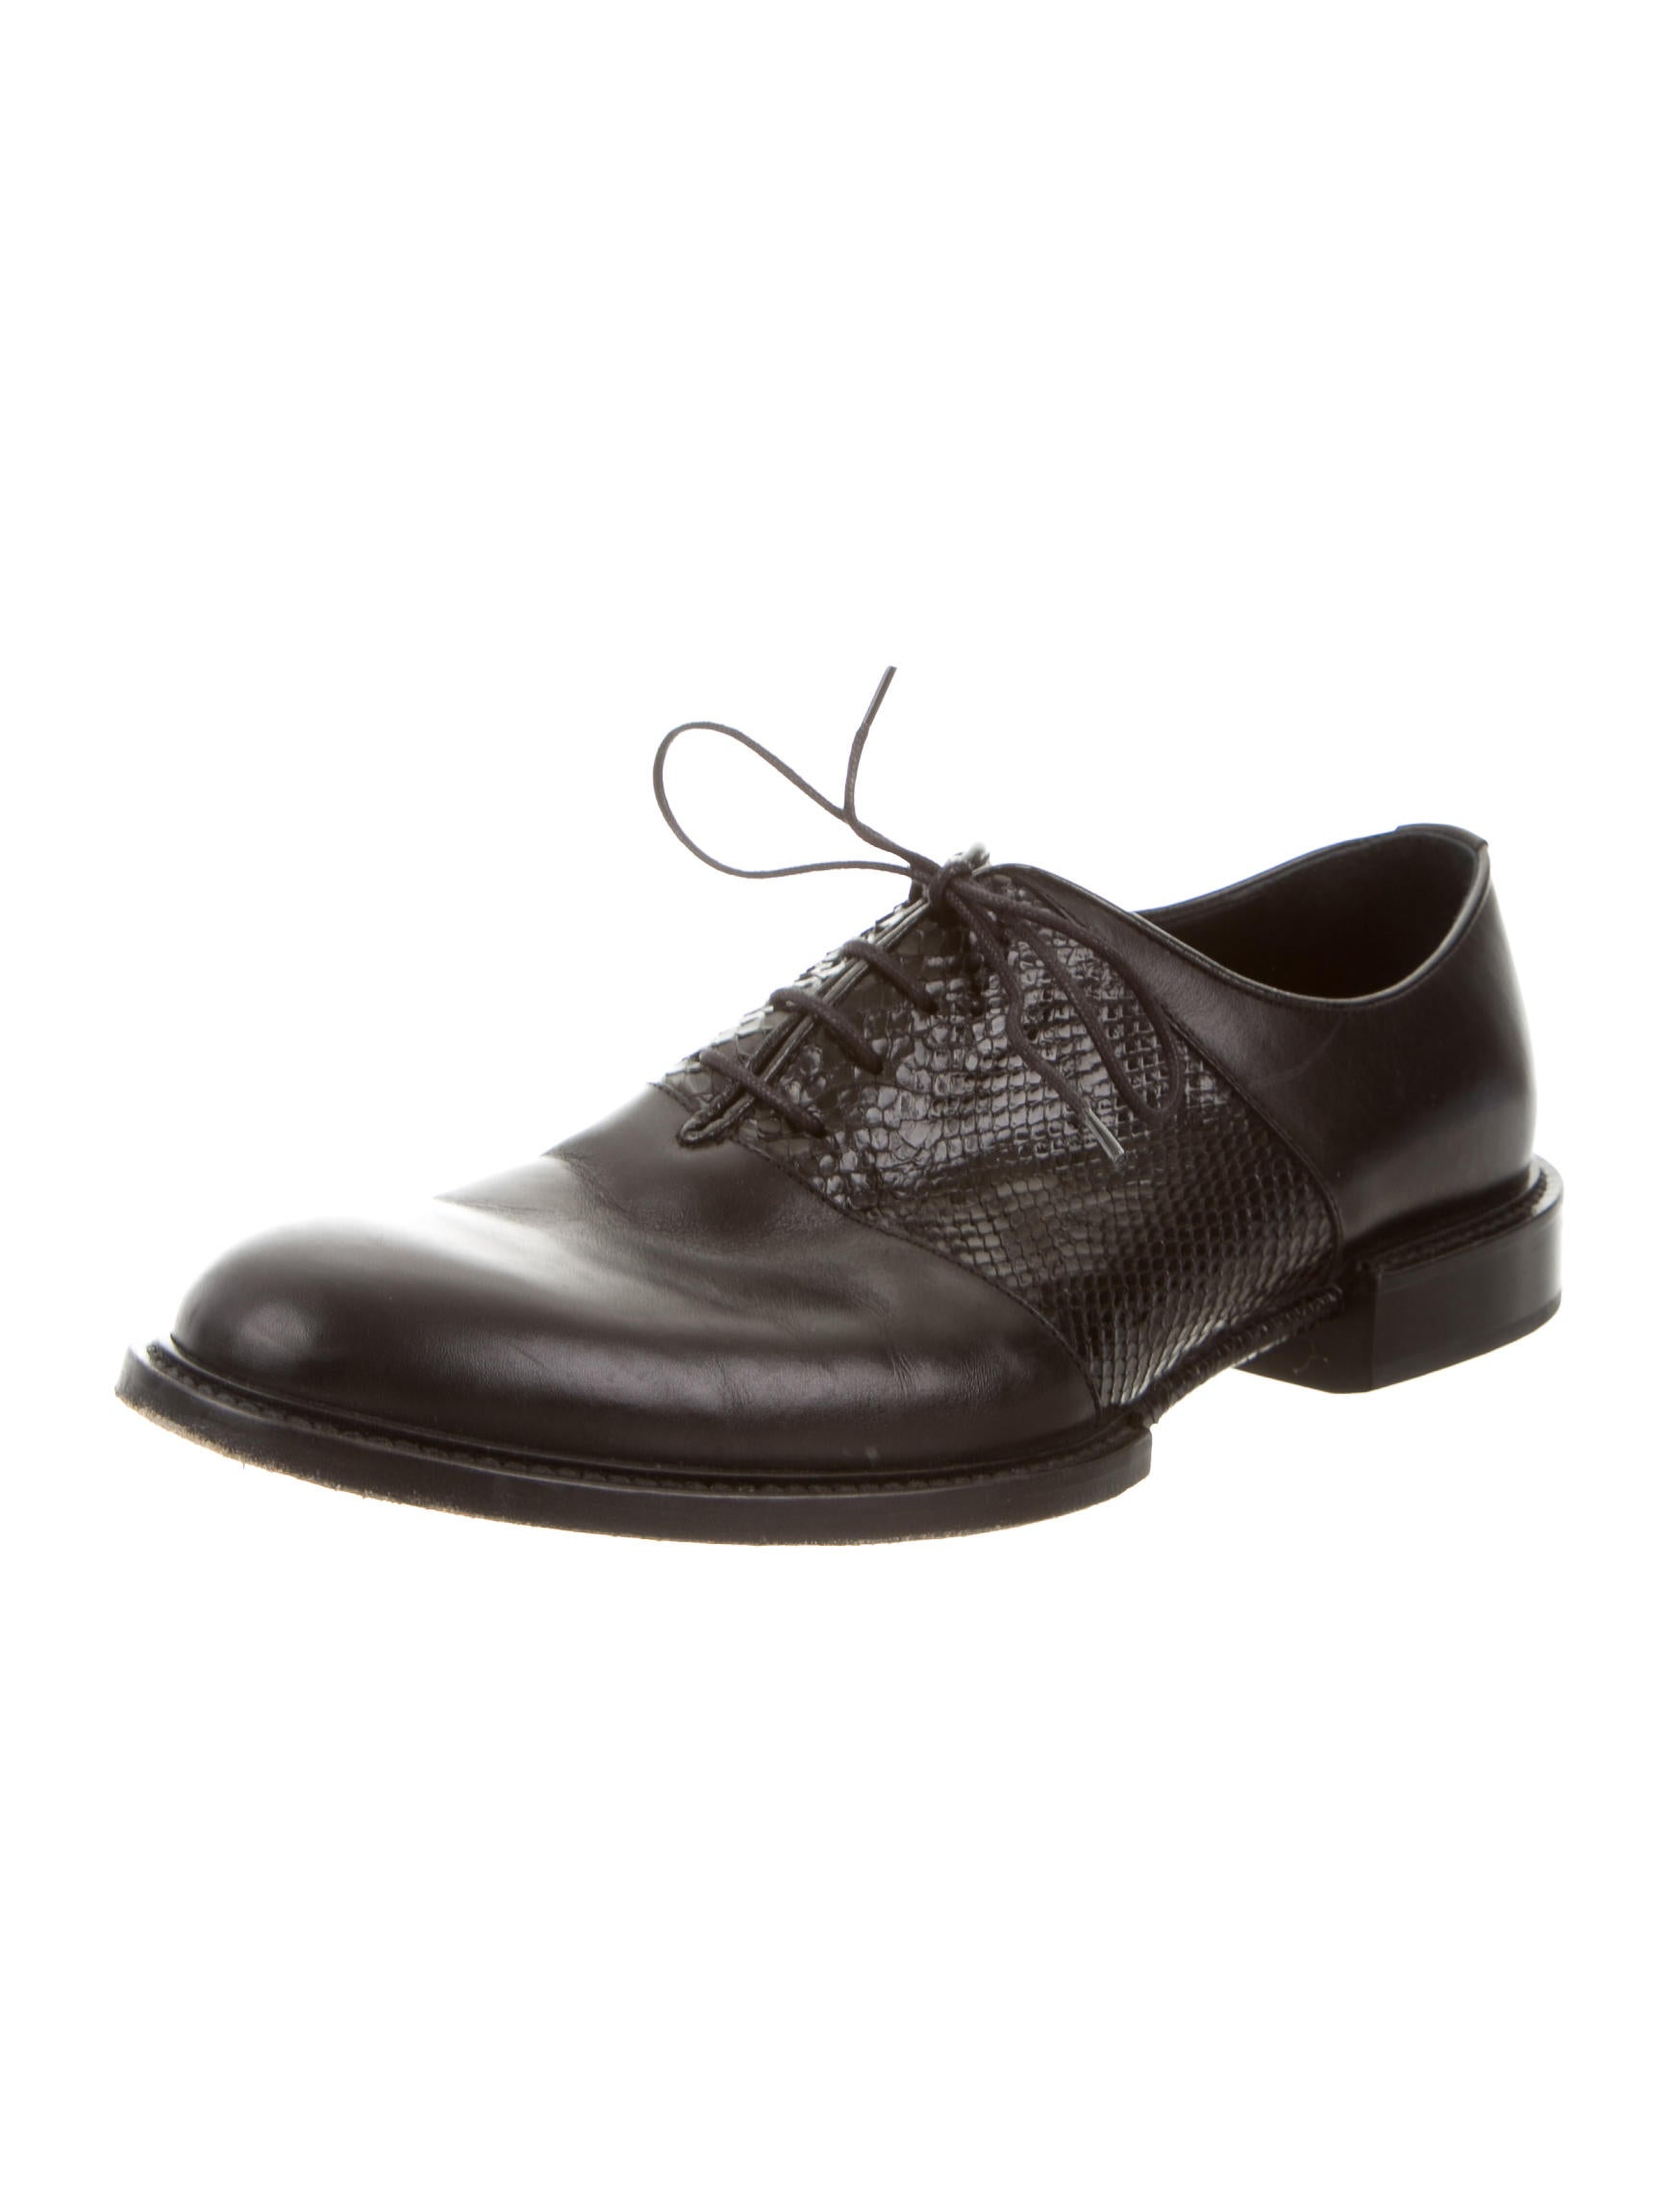 Versace Snakeskin Trimmed Leather Oxfords Shoes  : VES269232enlarged from www.therealreal.com size 1745 x 2301 jpeg 108kB